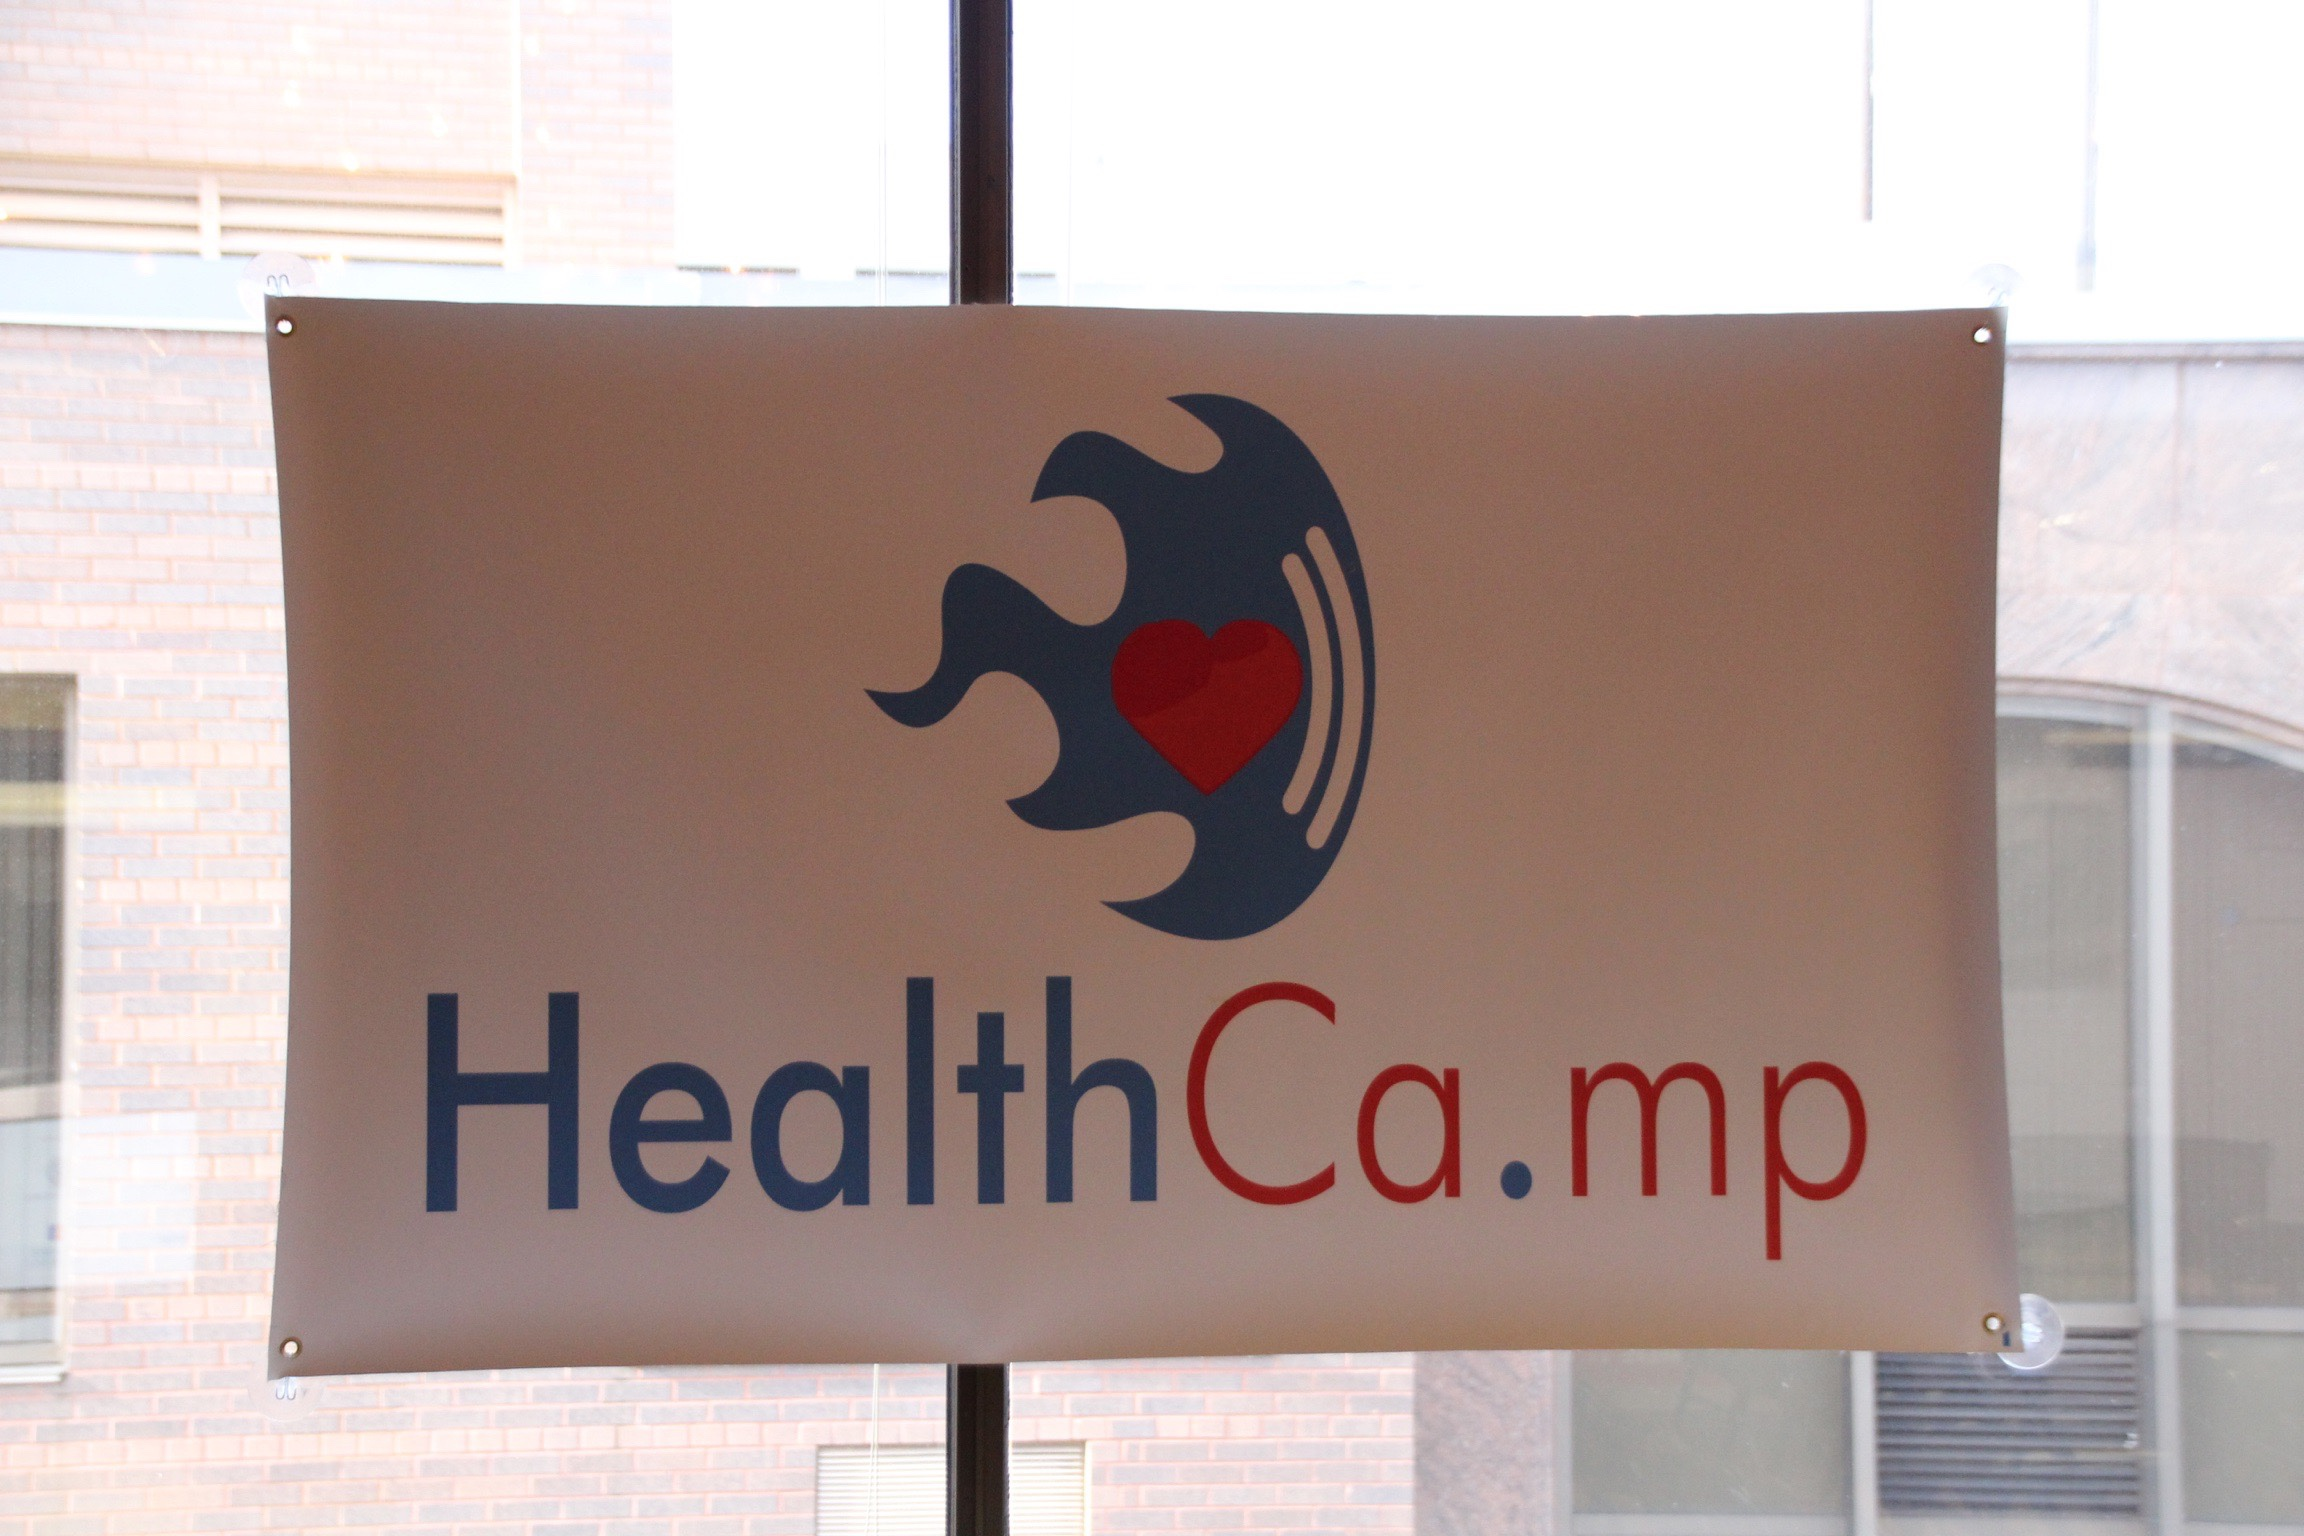 001_HealthCamp_logo